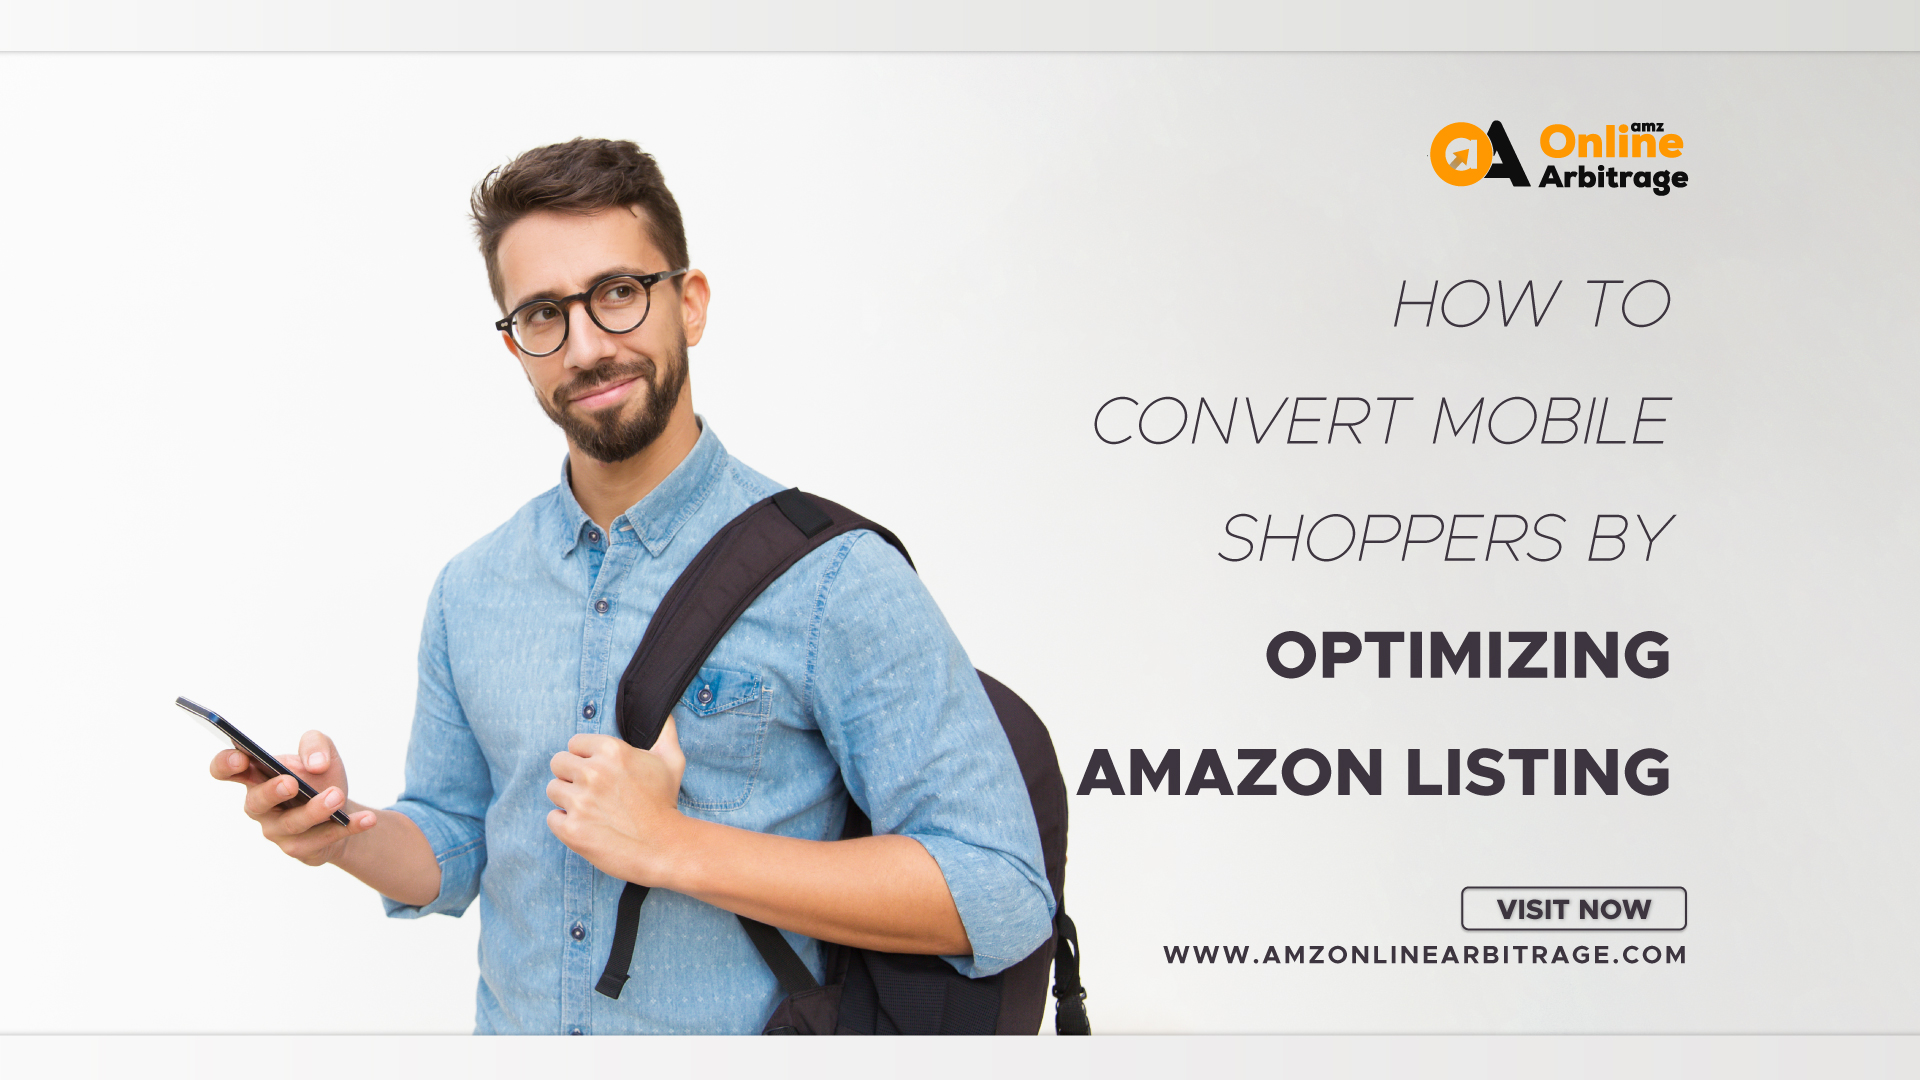 CONVERT MOBILE SHOPPERS BY OPTIMIZING AMAZON LISTING